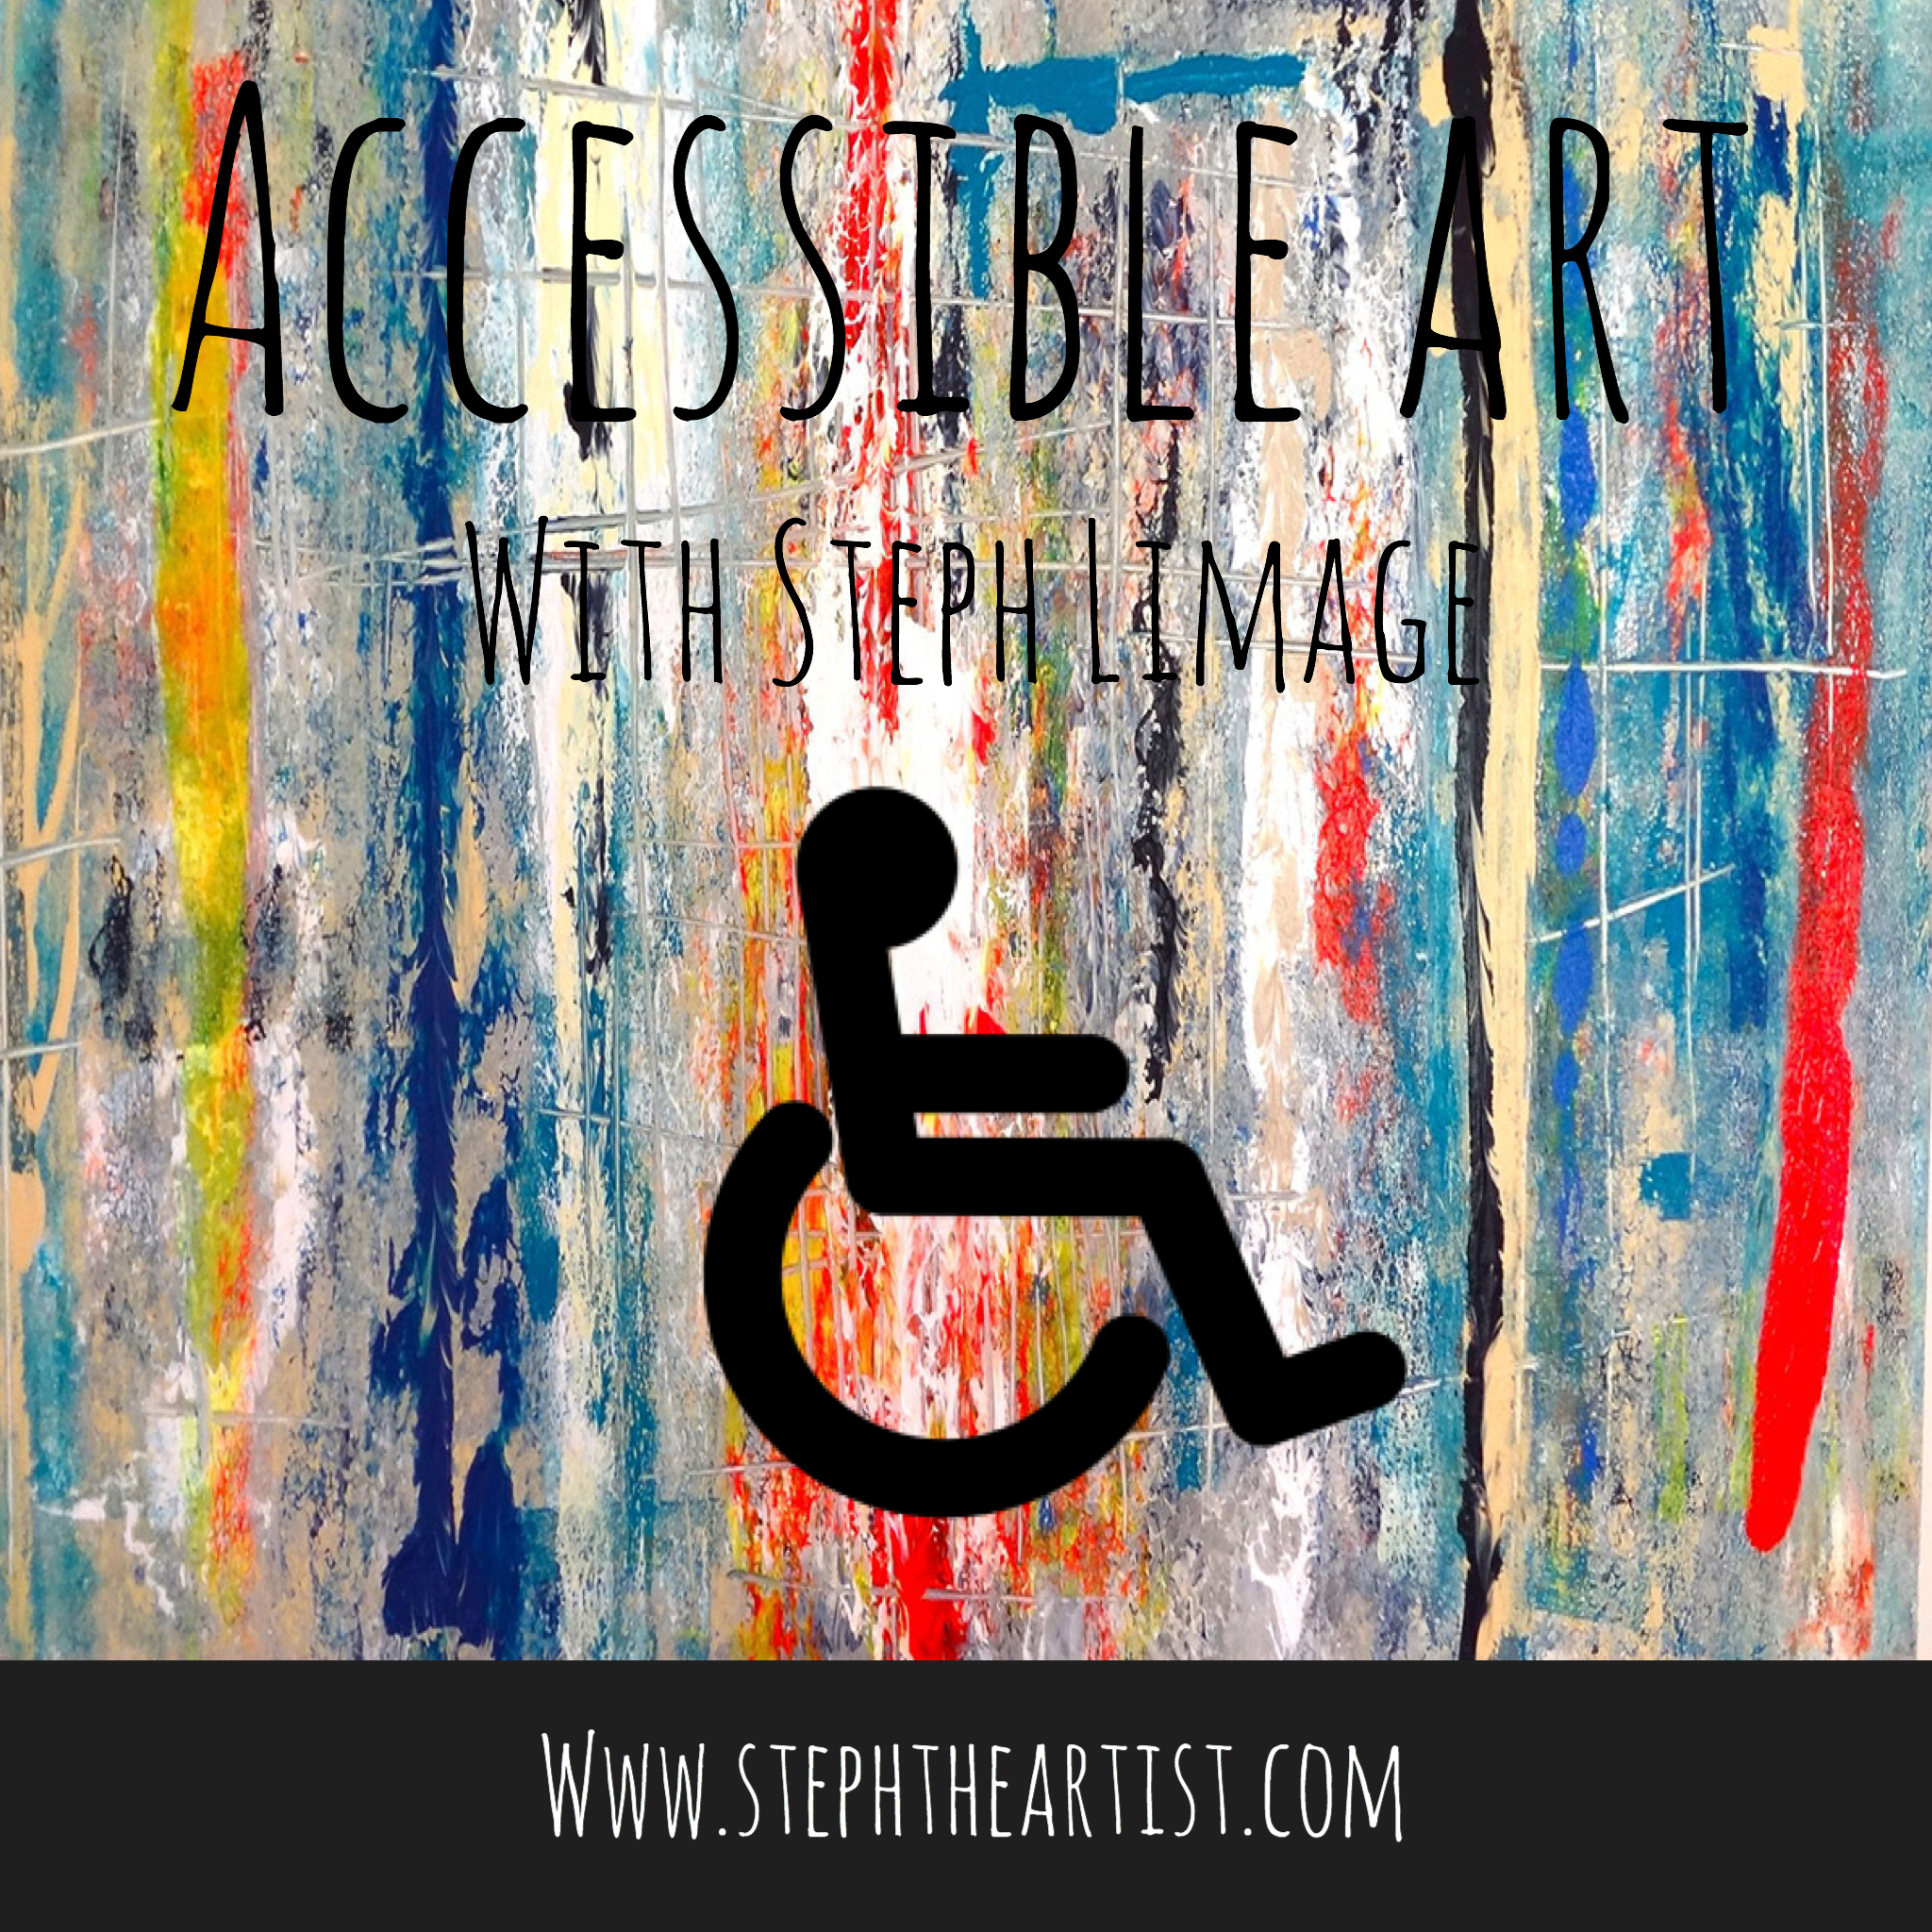 Accesable Art With Steph Limage